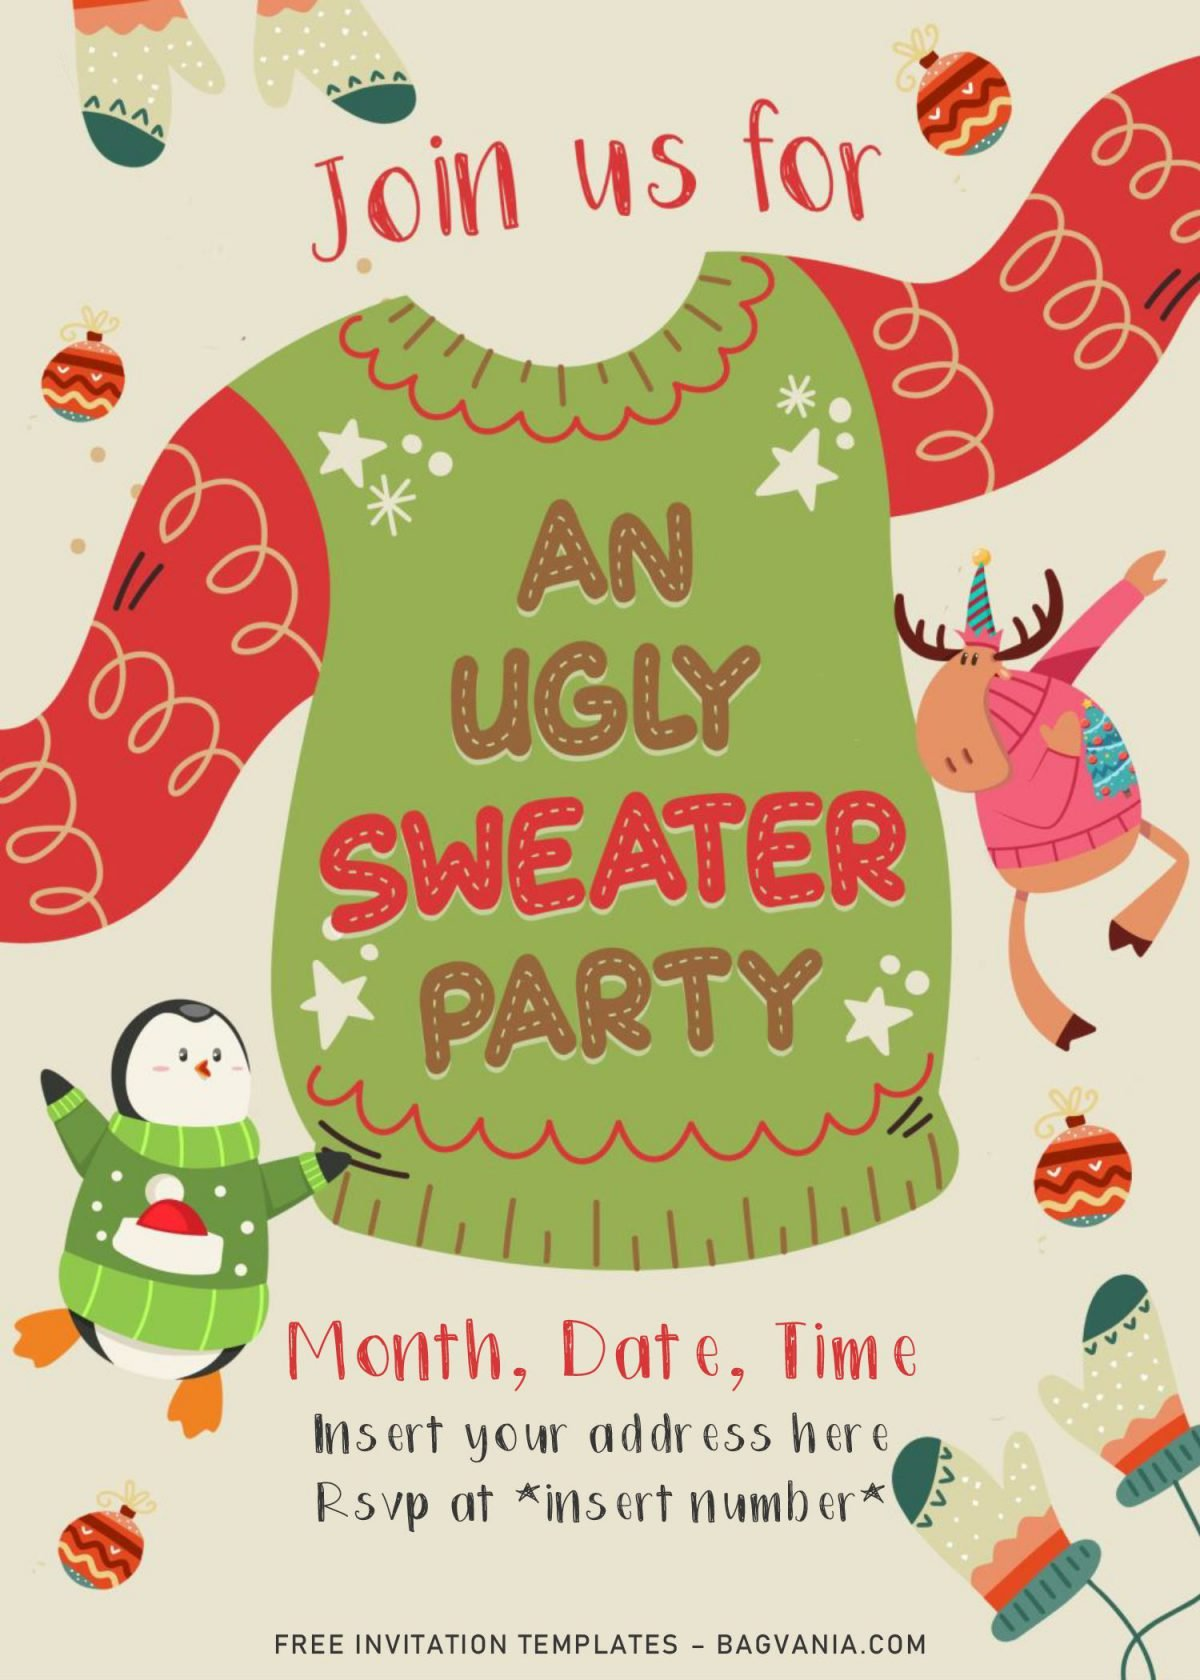 Free Winter Ugly Sweater Birthday Party Invitation Templates For Word and has Cute Penguin is wearing sweater